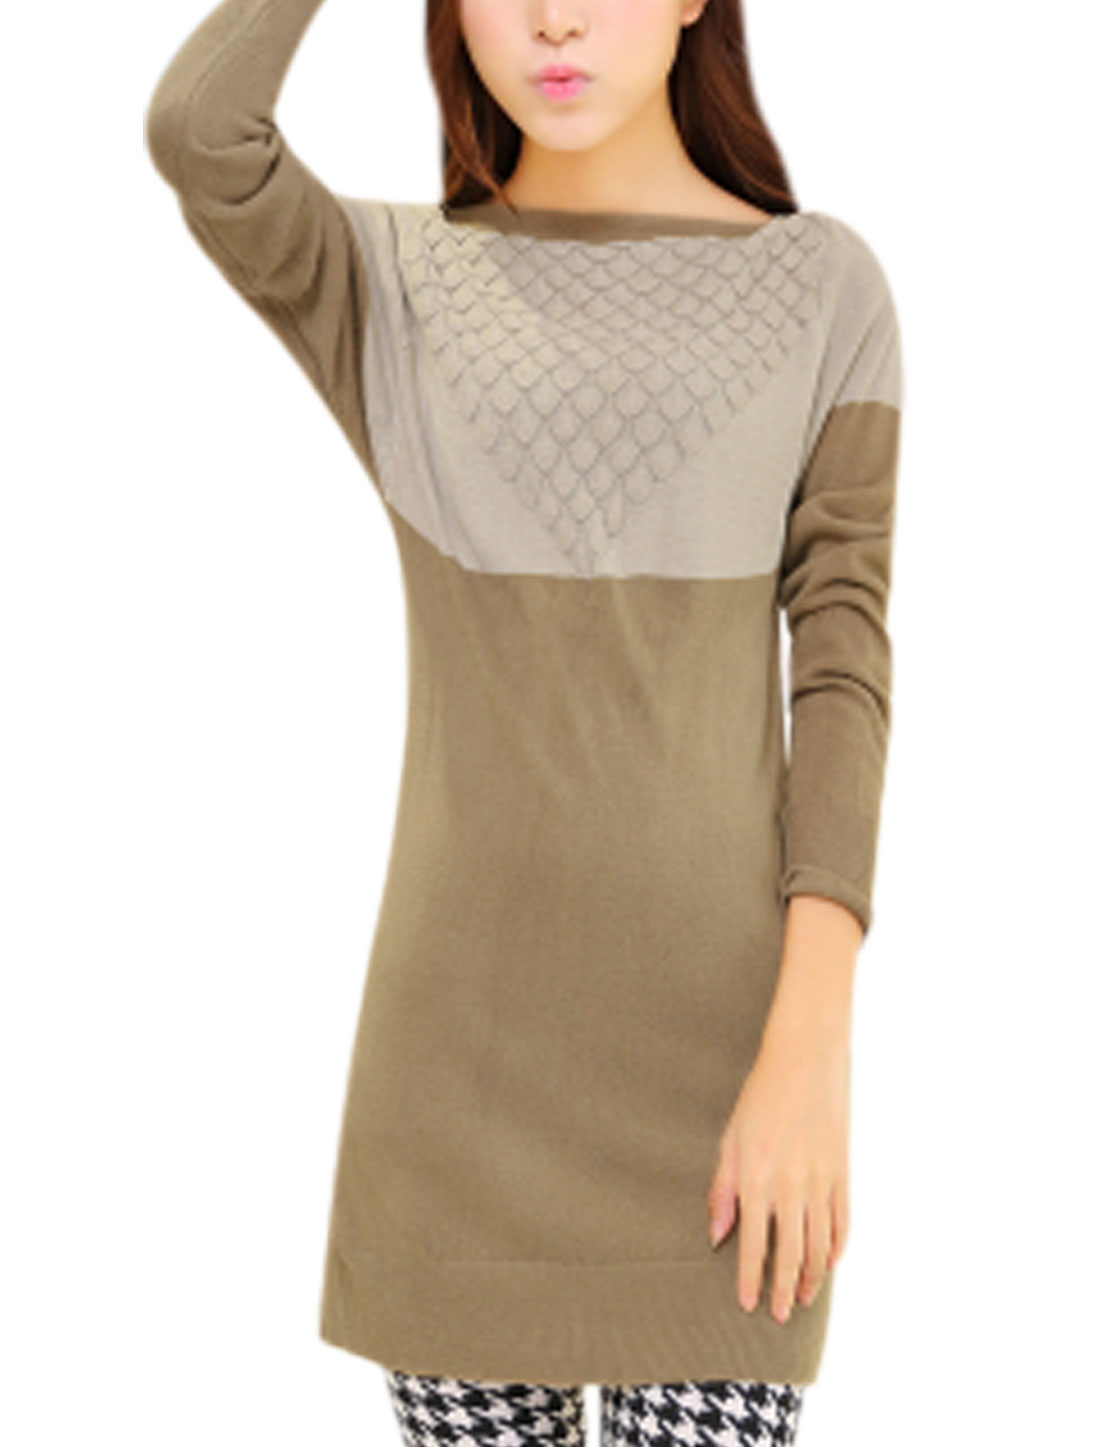 Lady Color Blocking Boat Neck Tunic Stylish Chic Knitted Top Sand Taupe S